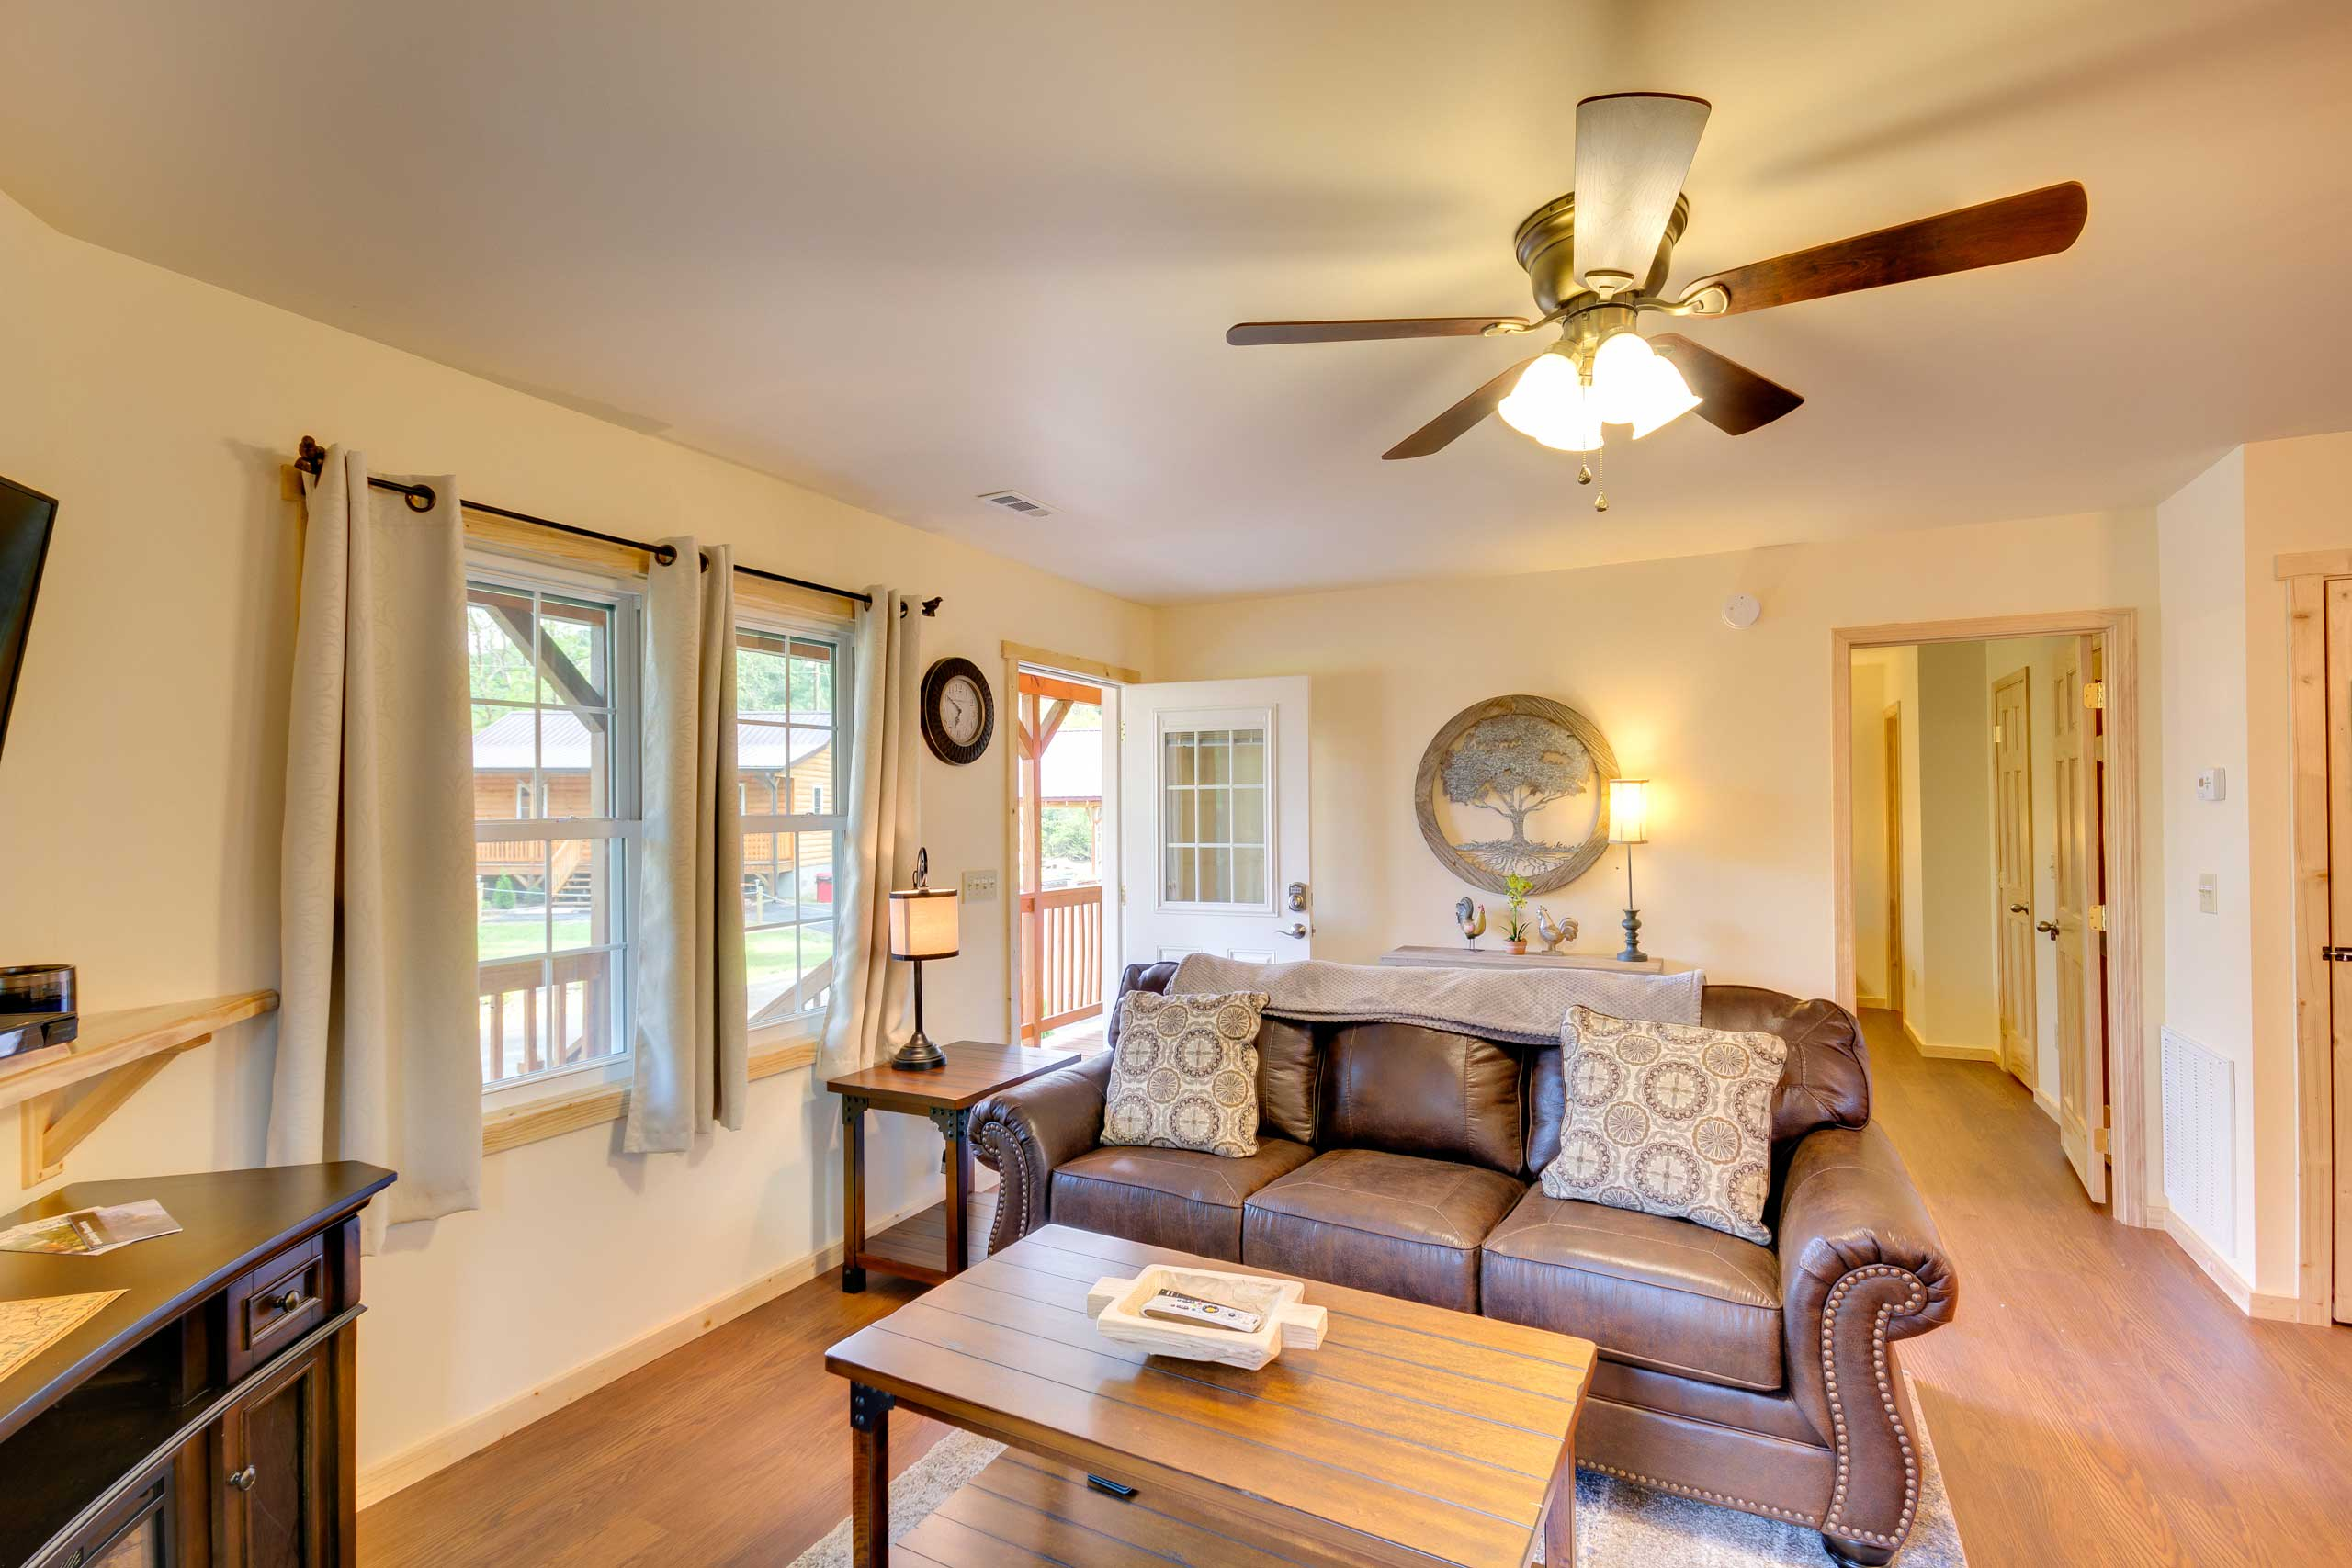 Inside, the recently renovated interior boasts a full array of modern comforts.